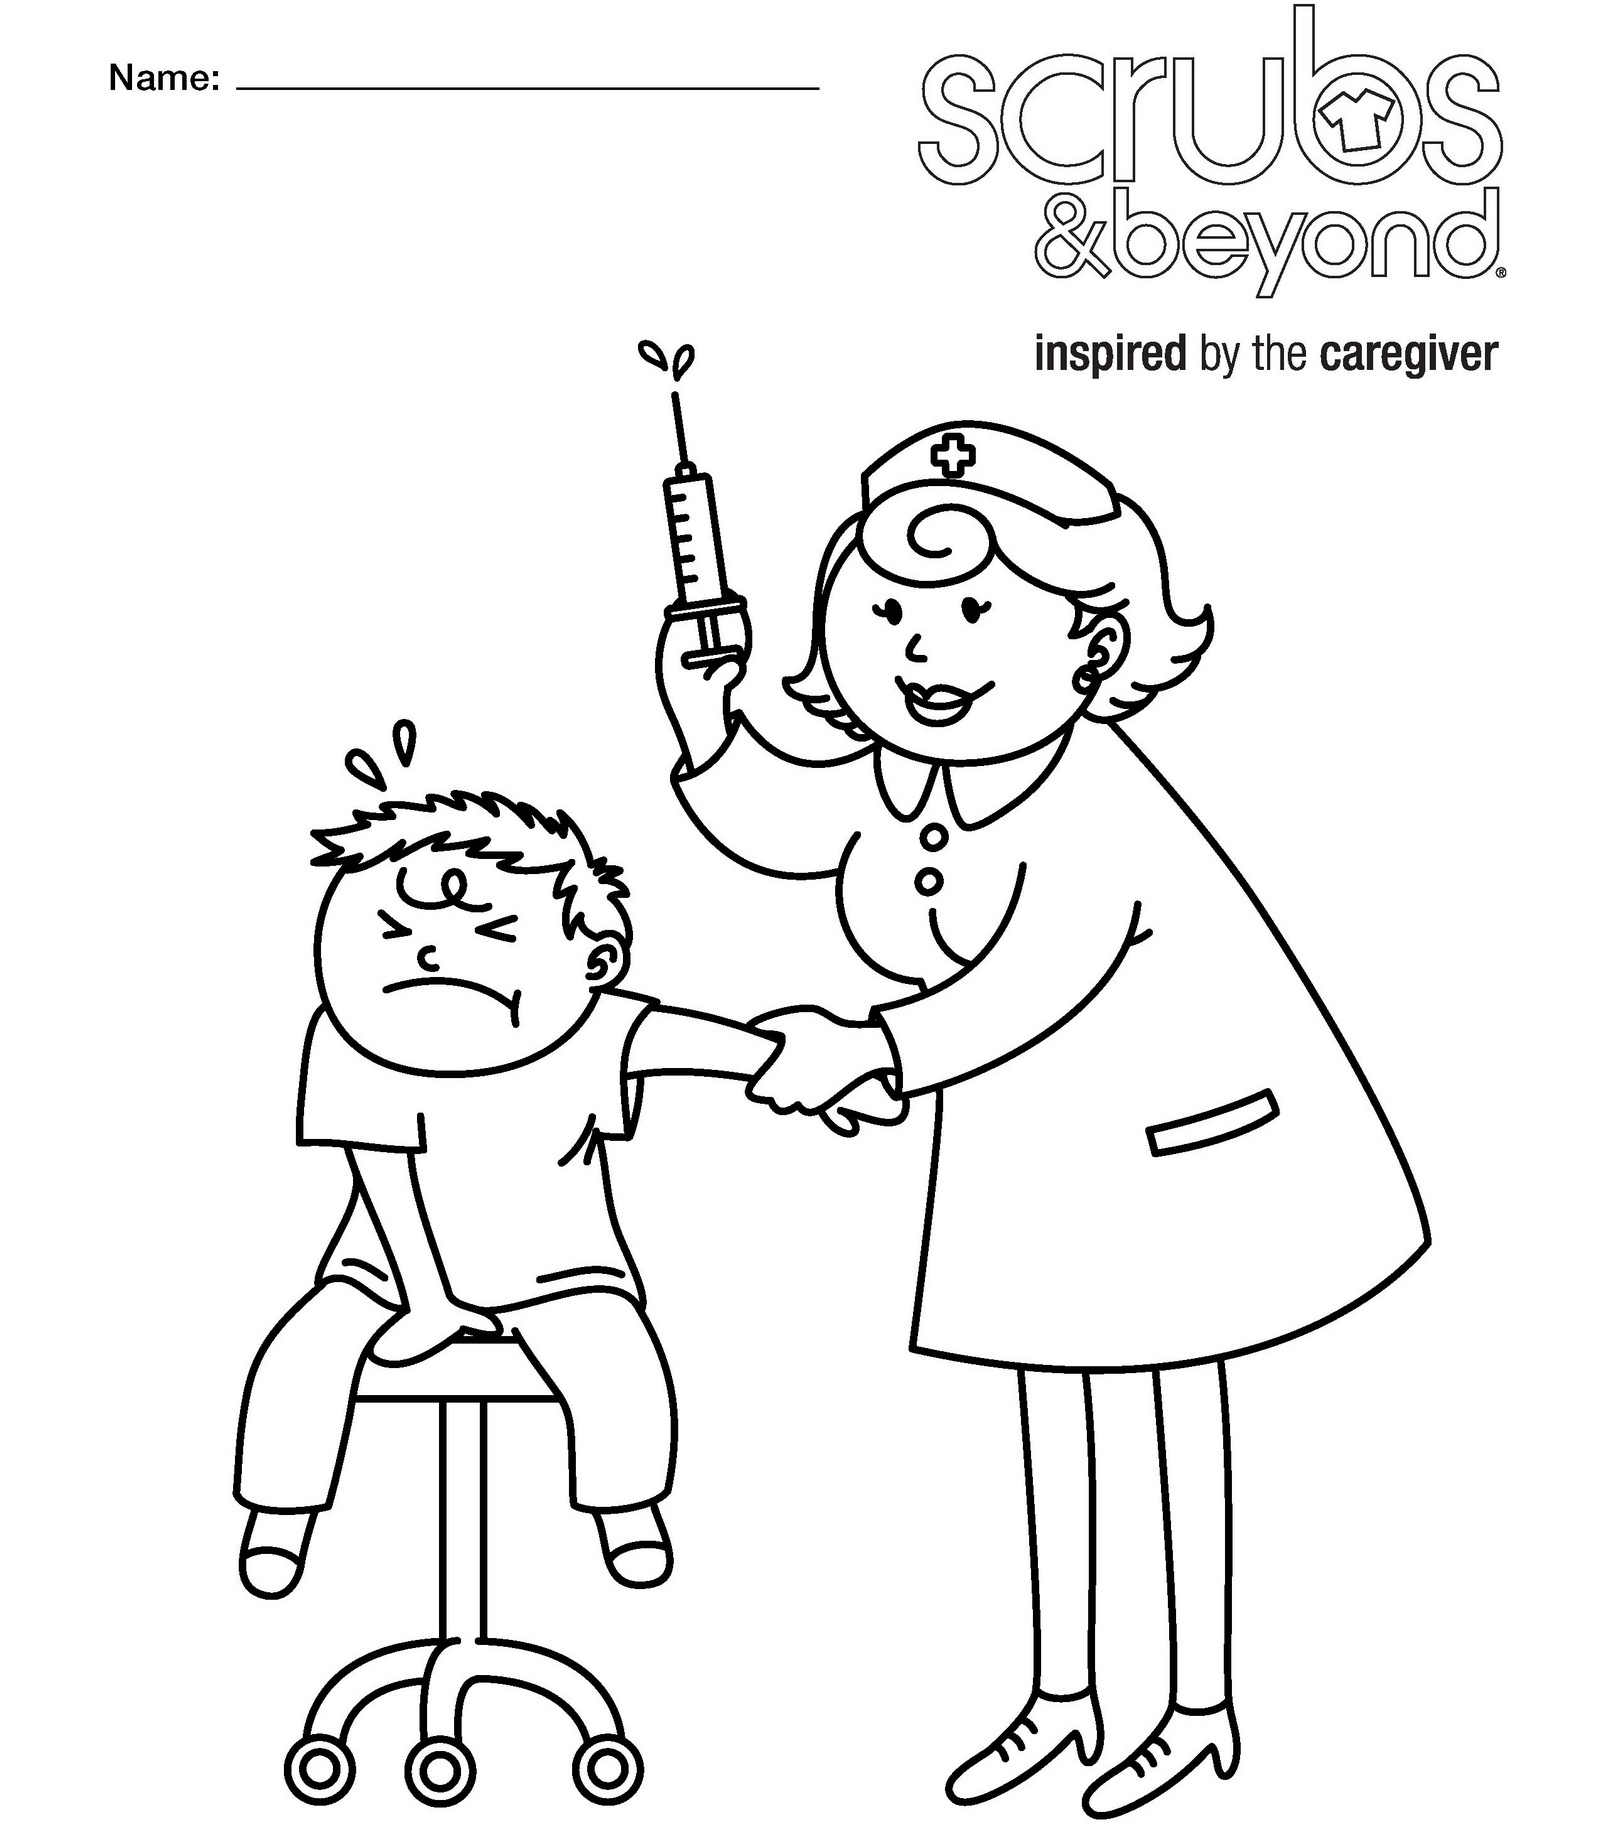 nurse medical equipment coloring sheet